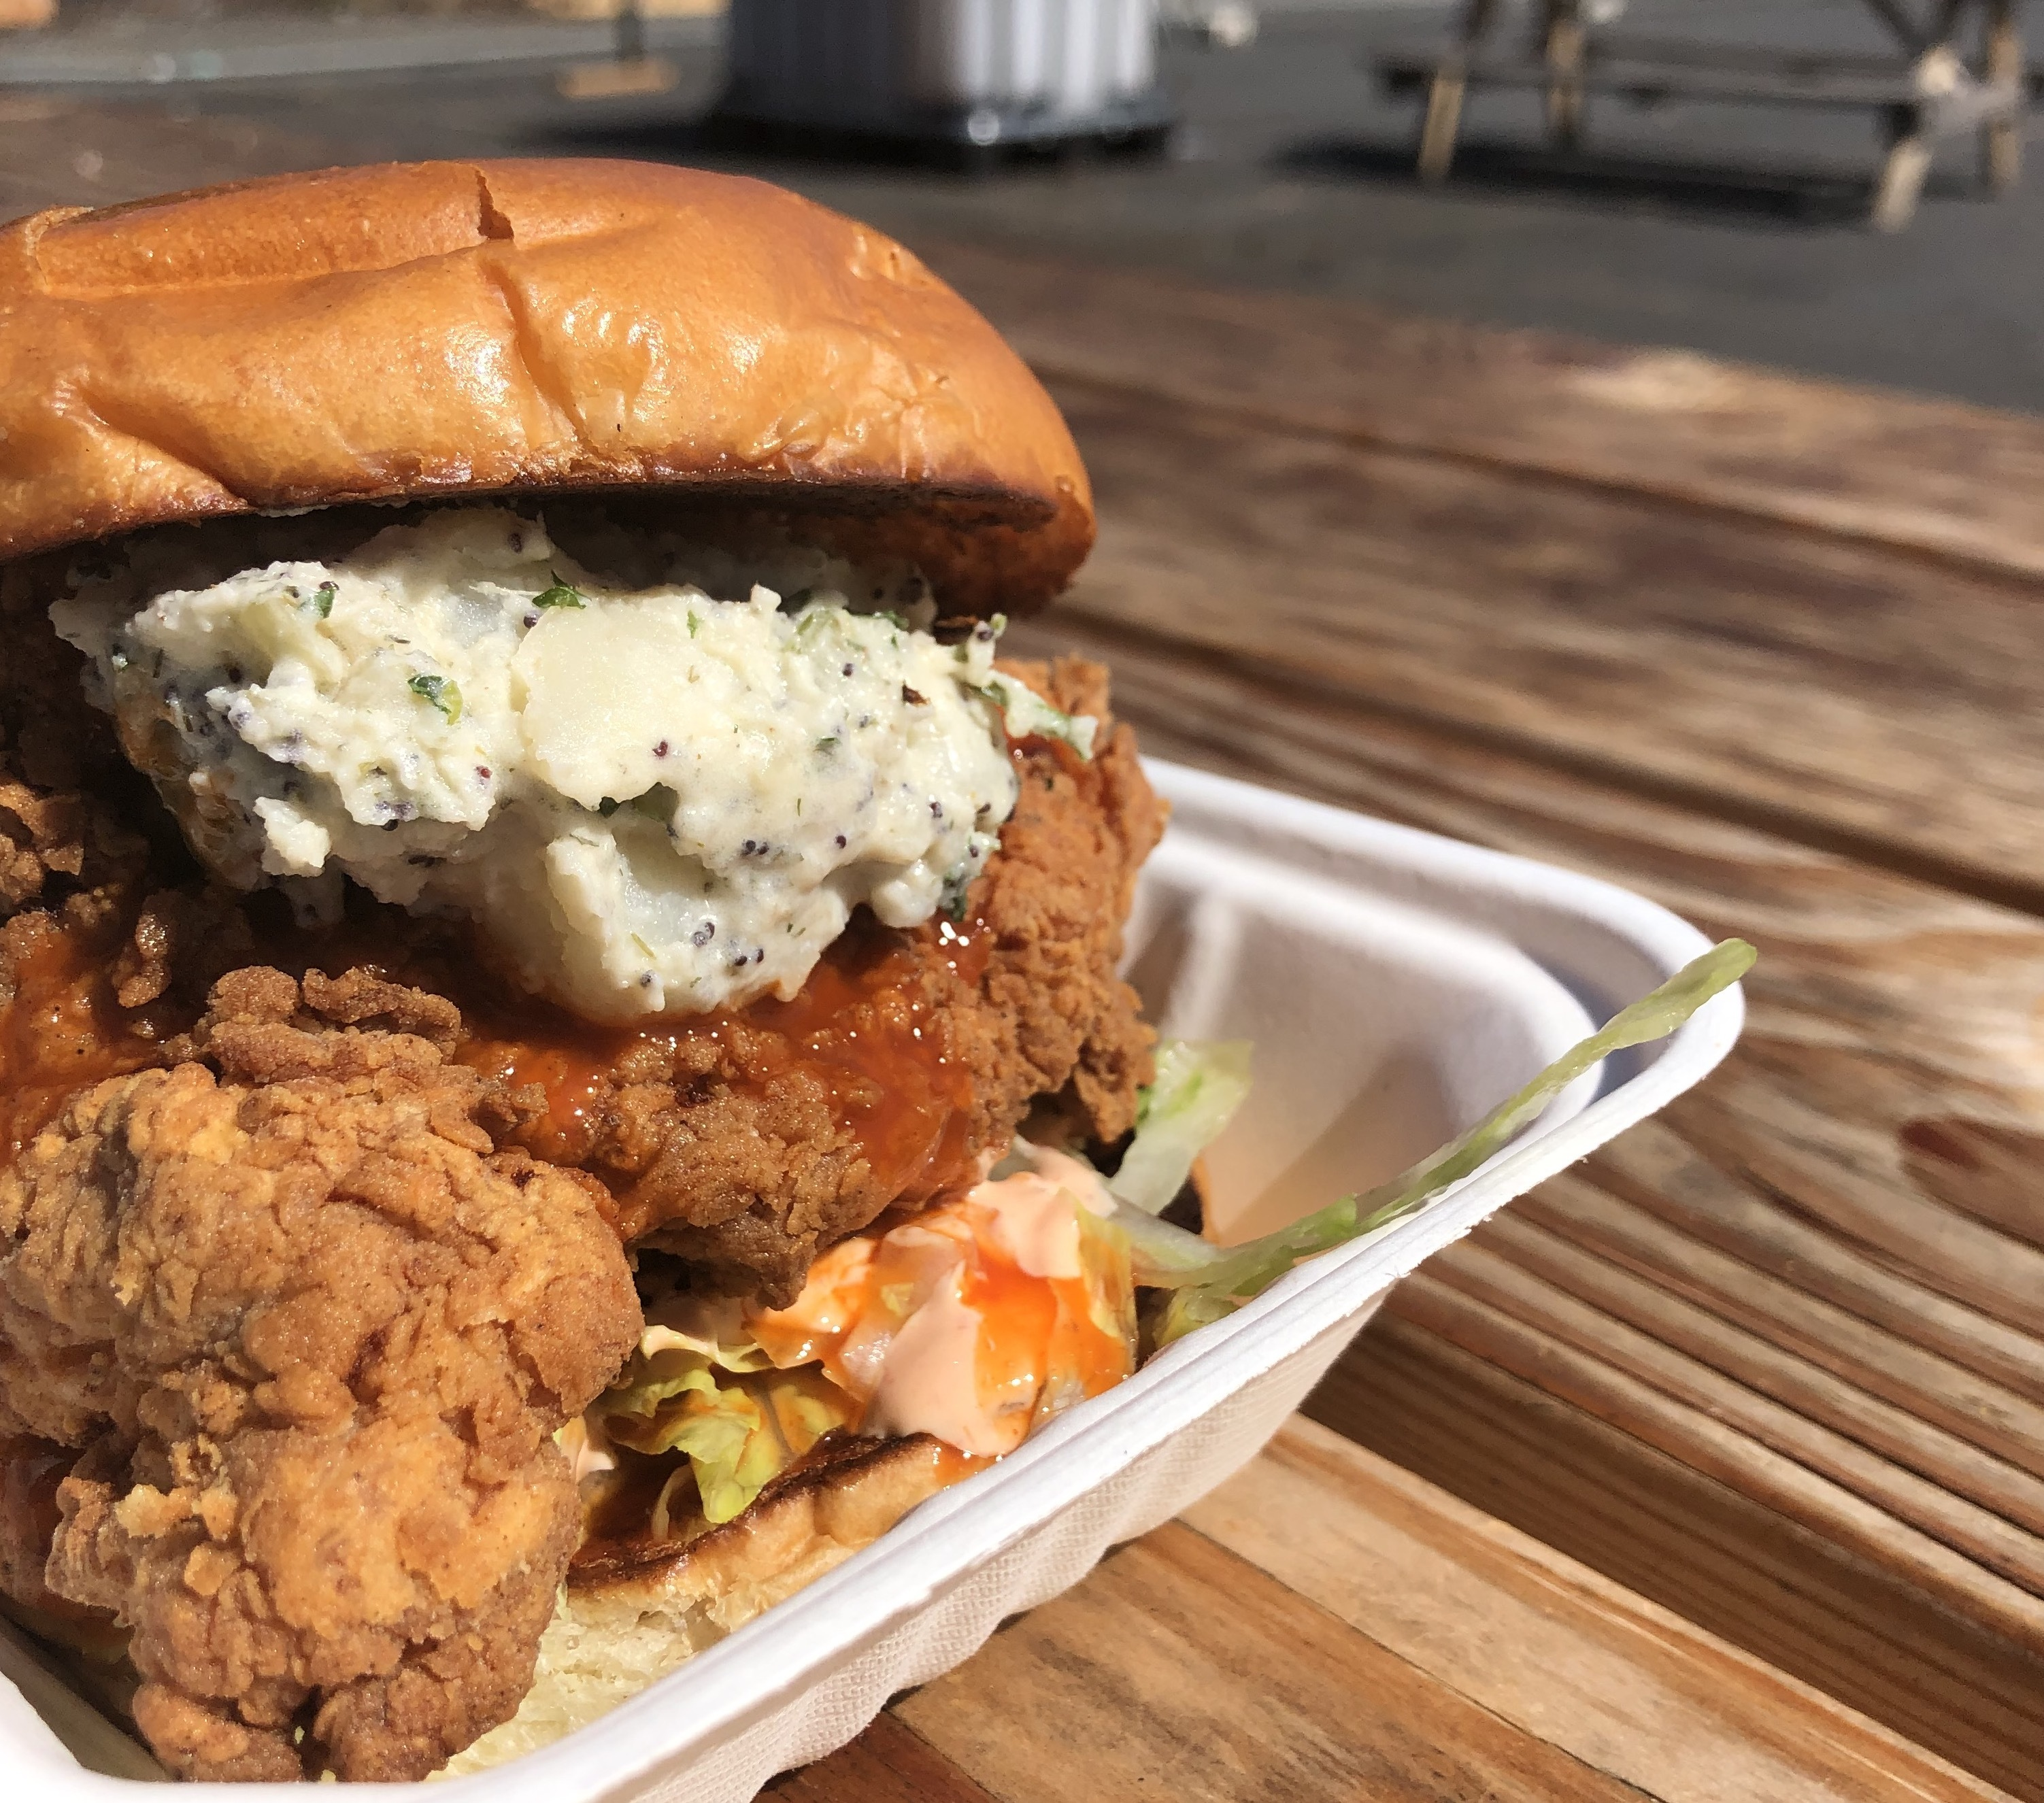 A picture of a Jojo chicken sandwich with potato salad and sambal mayo